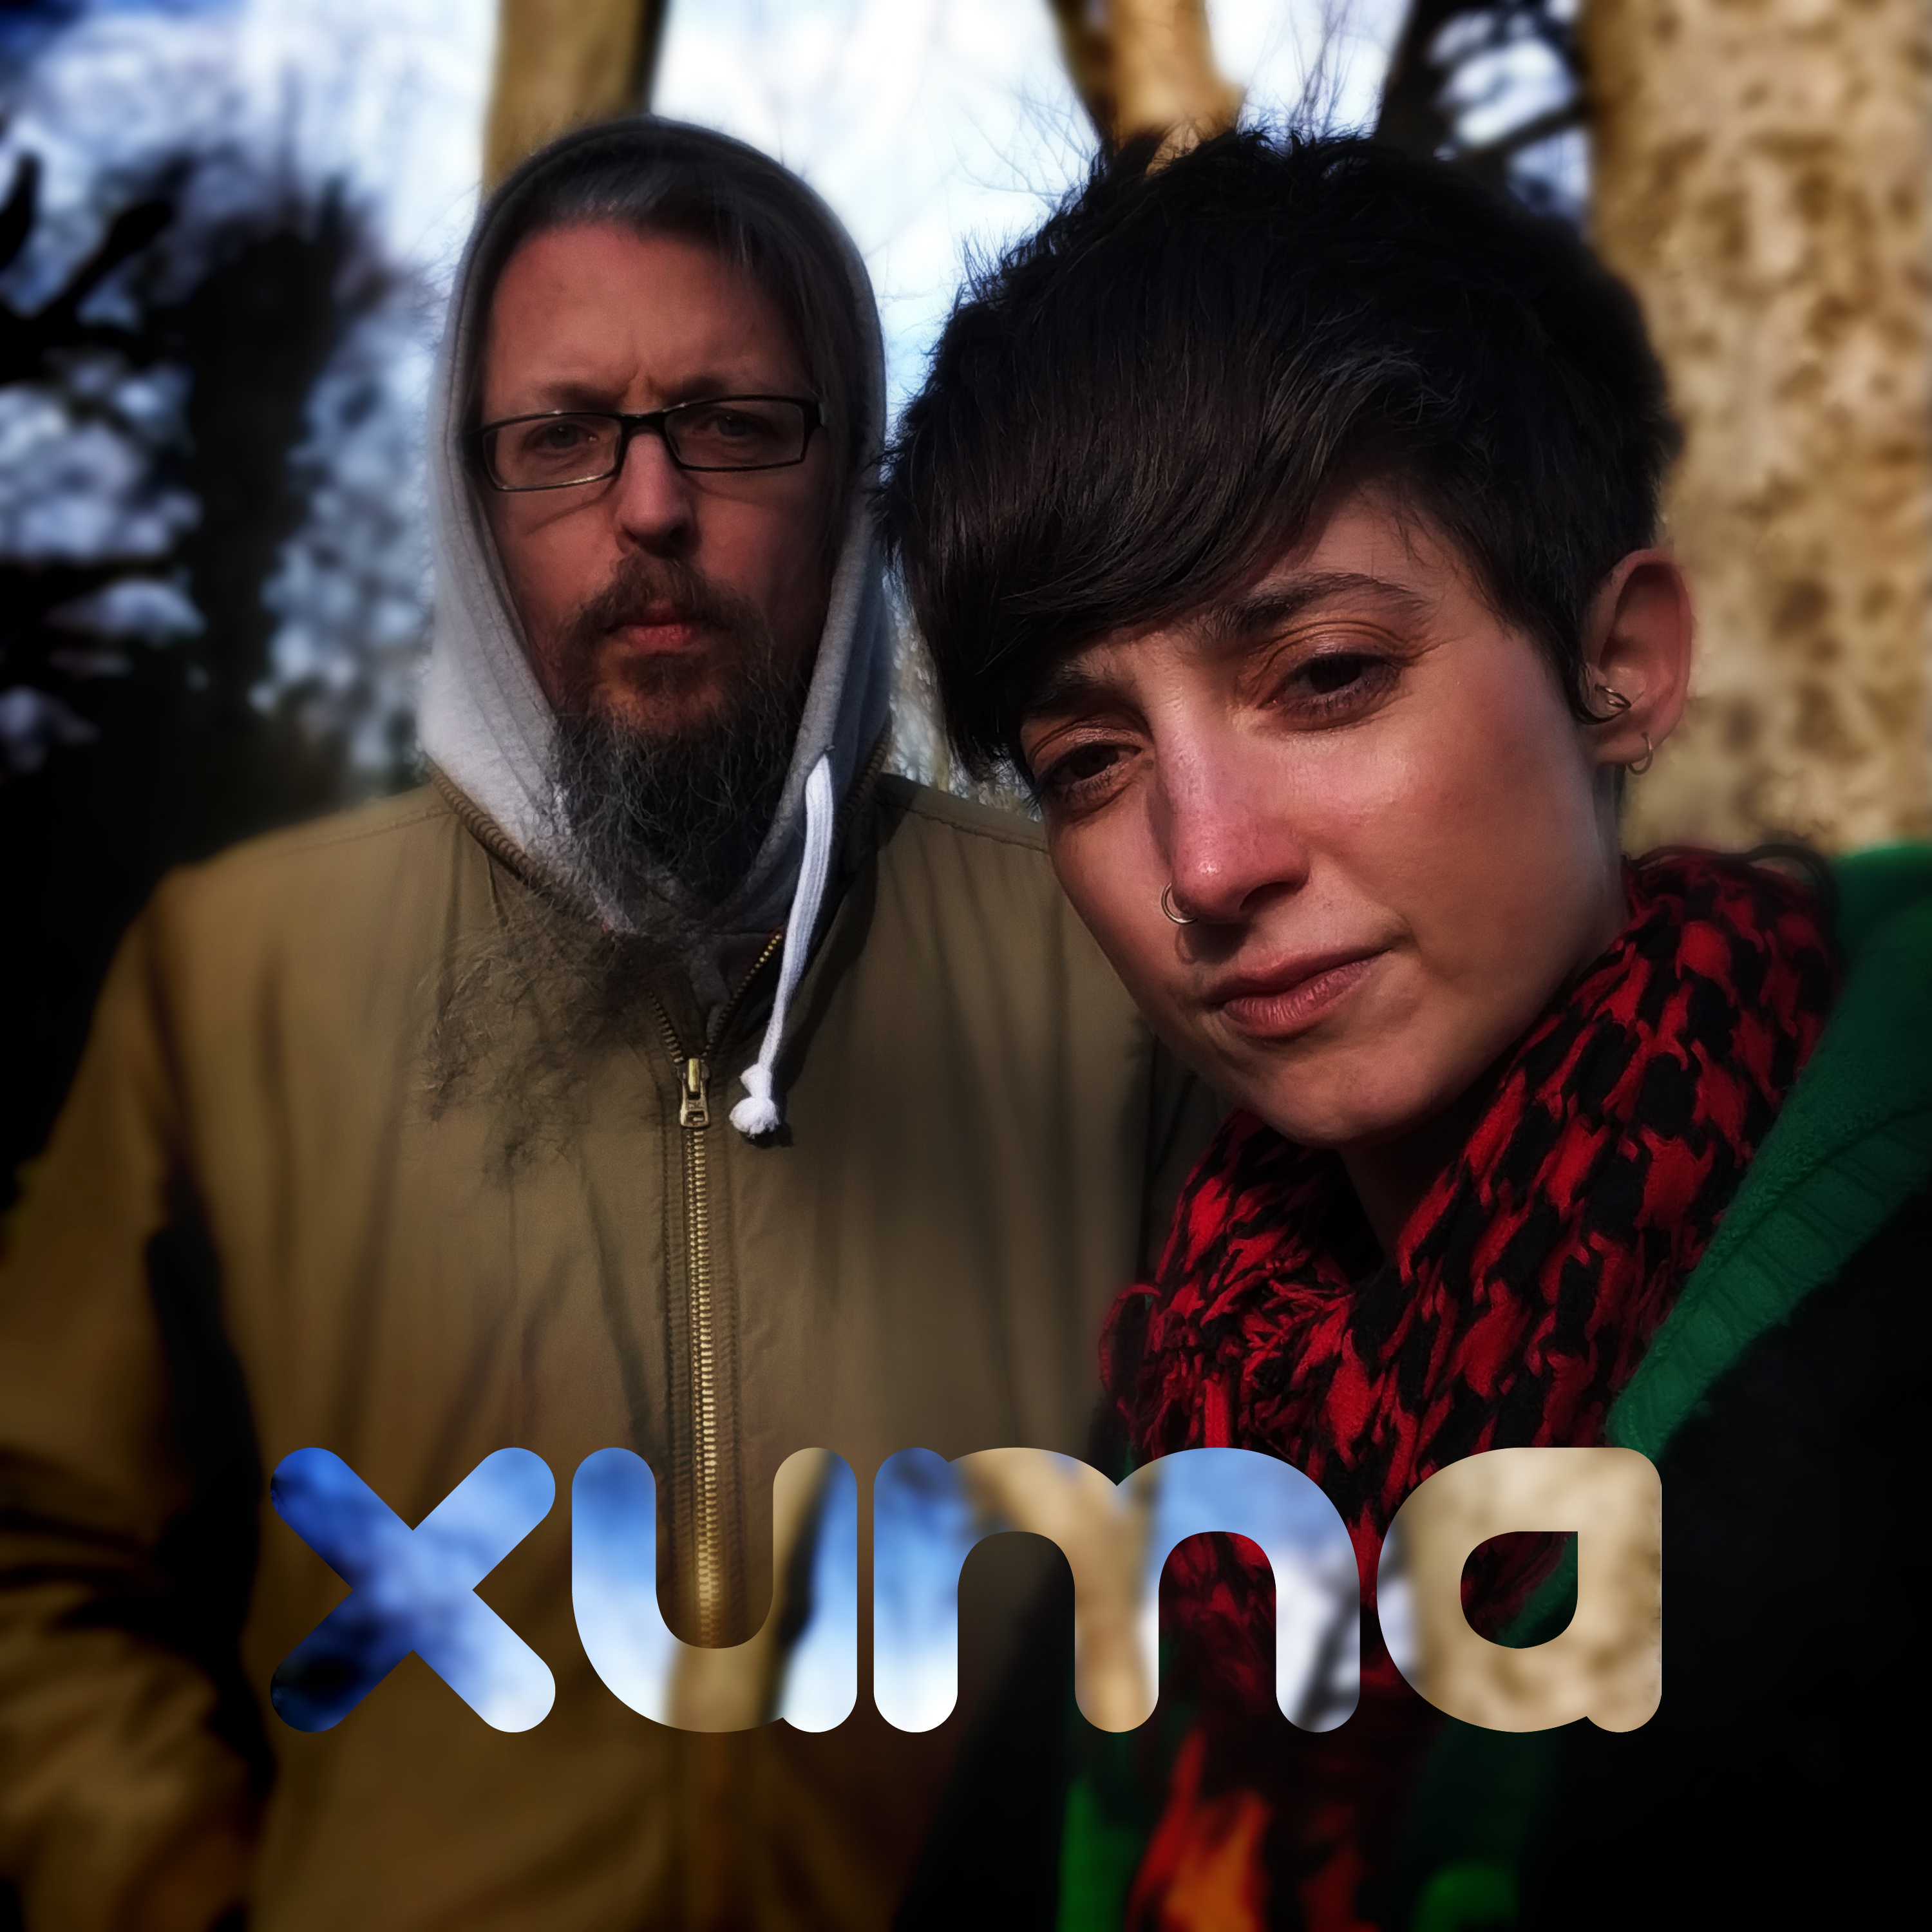 Xuma, Here We Are. A portrait of a couple, standing in the woods.